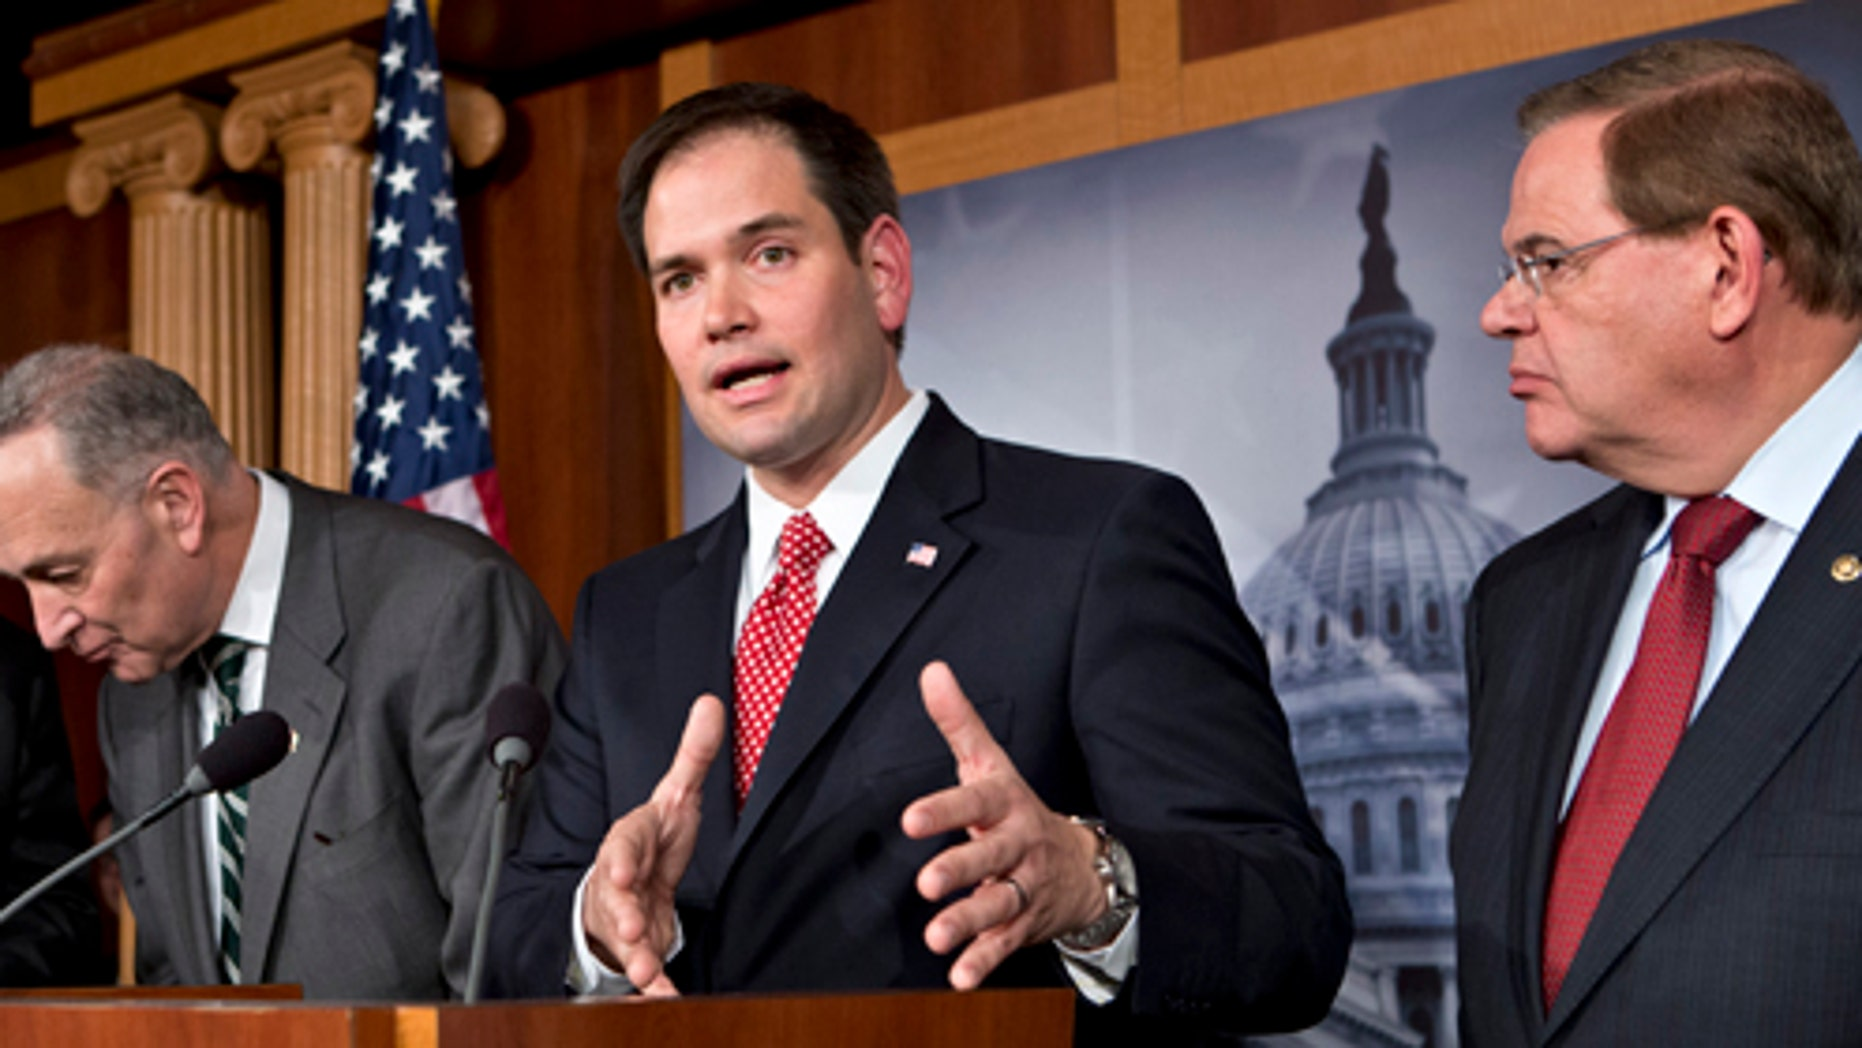 A bipartisan Senate group is working on its own comprehensive immigration reform bill.